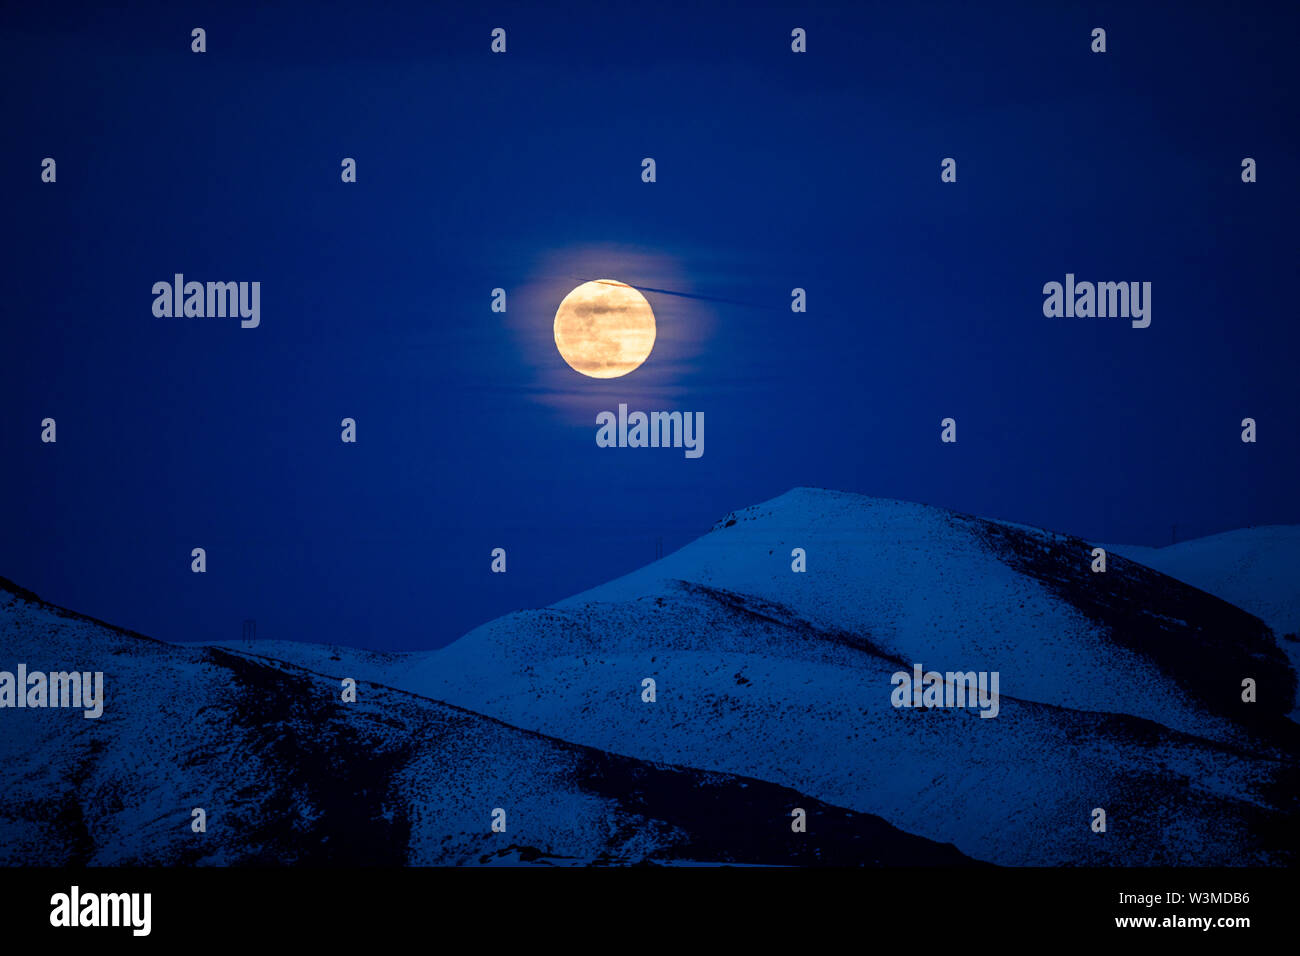 Full moon over mountains at night in Bellevue, Idaho, USA - Stock Image